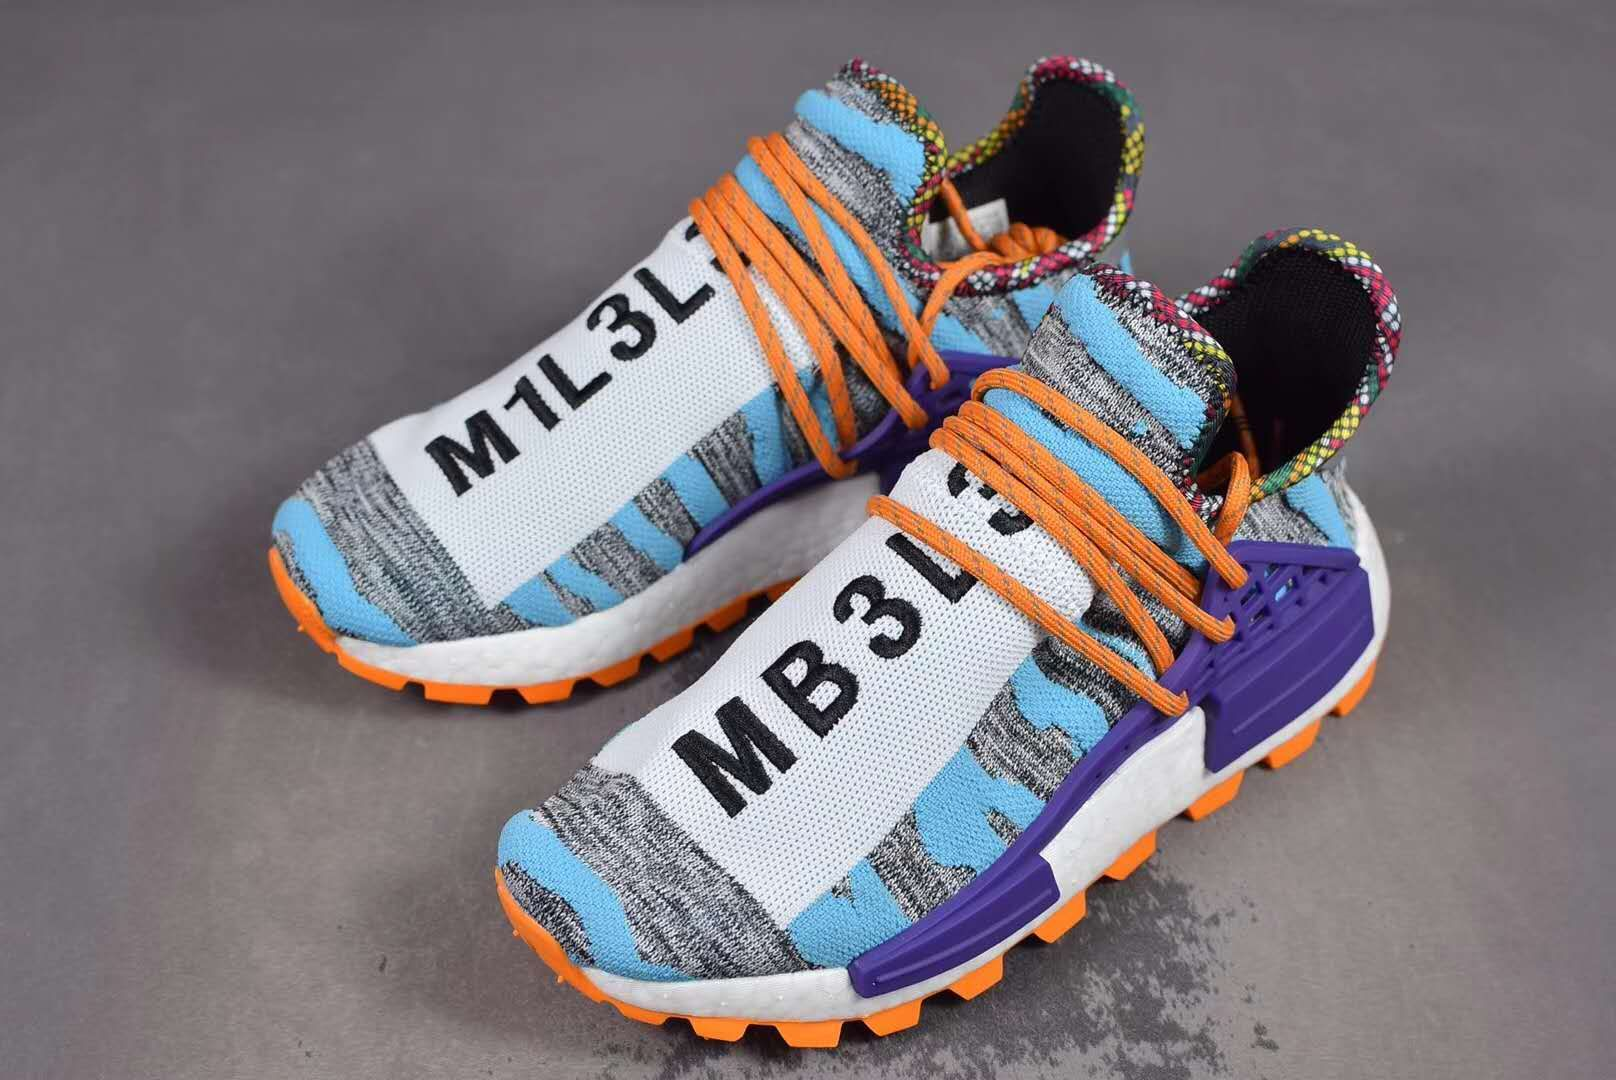 9c4907bbc Pharrell Williams x Adidas Afro NMD Hu Trail Solar Pack Release Date ...